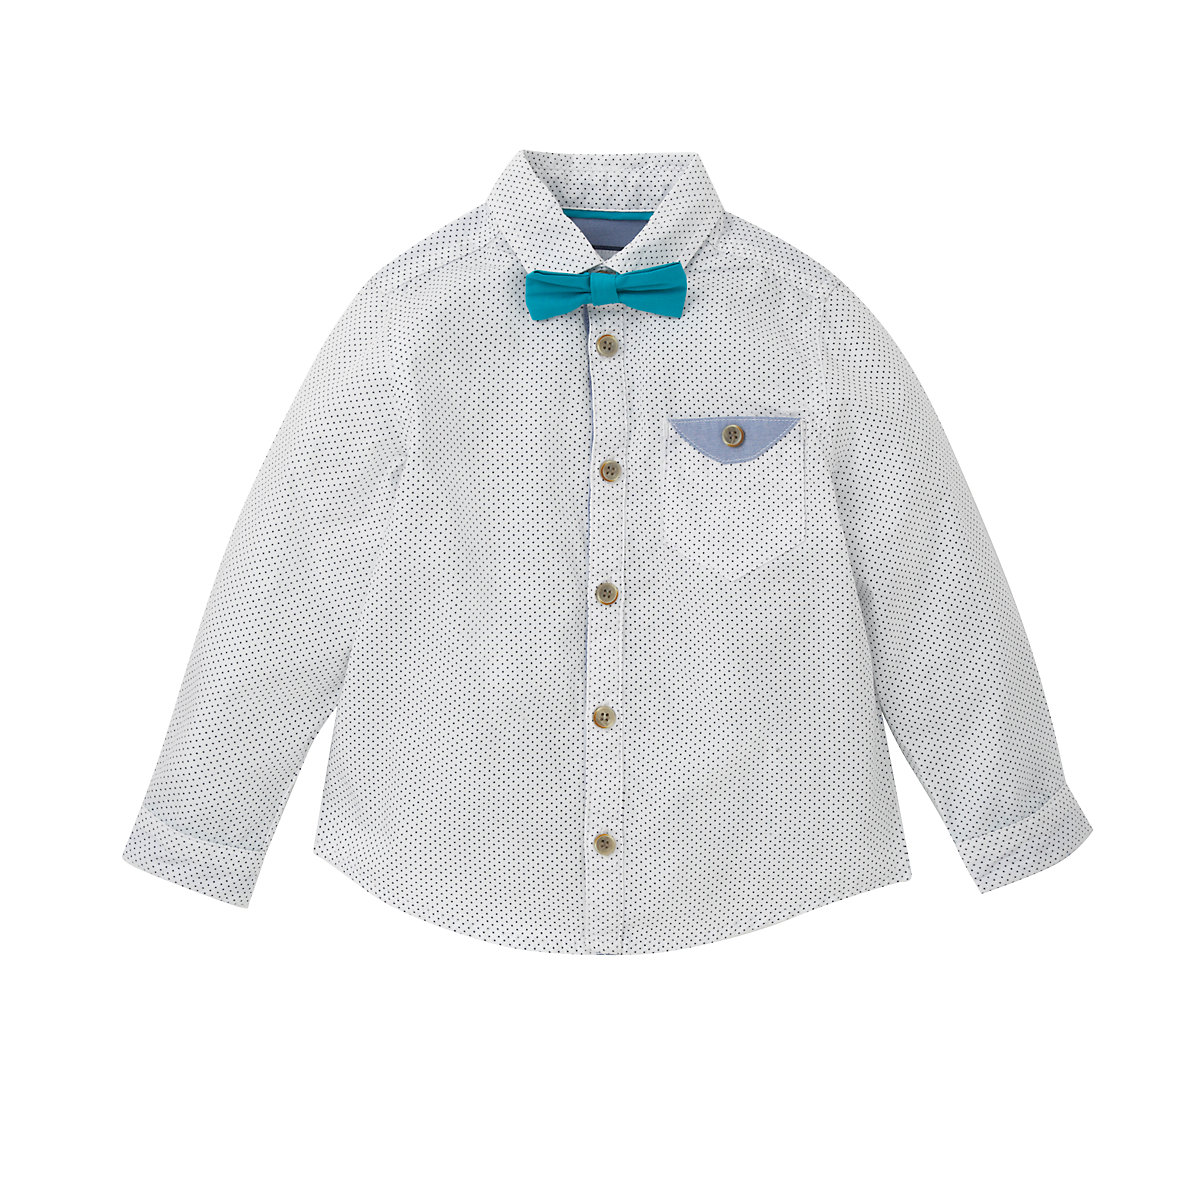 Add an upgrade to his formal look! This boy's dresswear set features a long sleeve dress shirt with a single chest pocket and a stripe clip-on bow tie for the perfect color contrast.